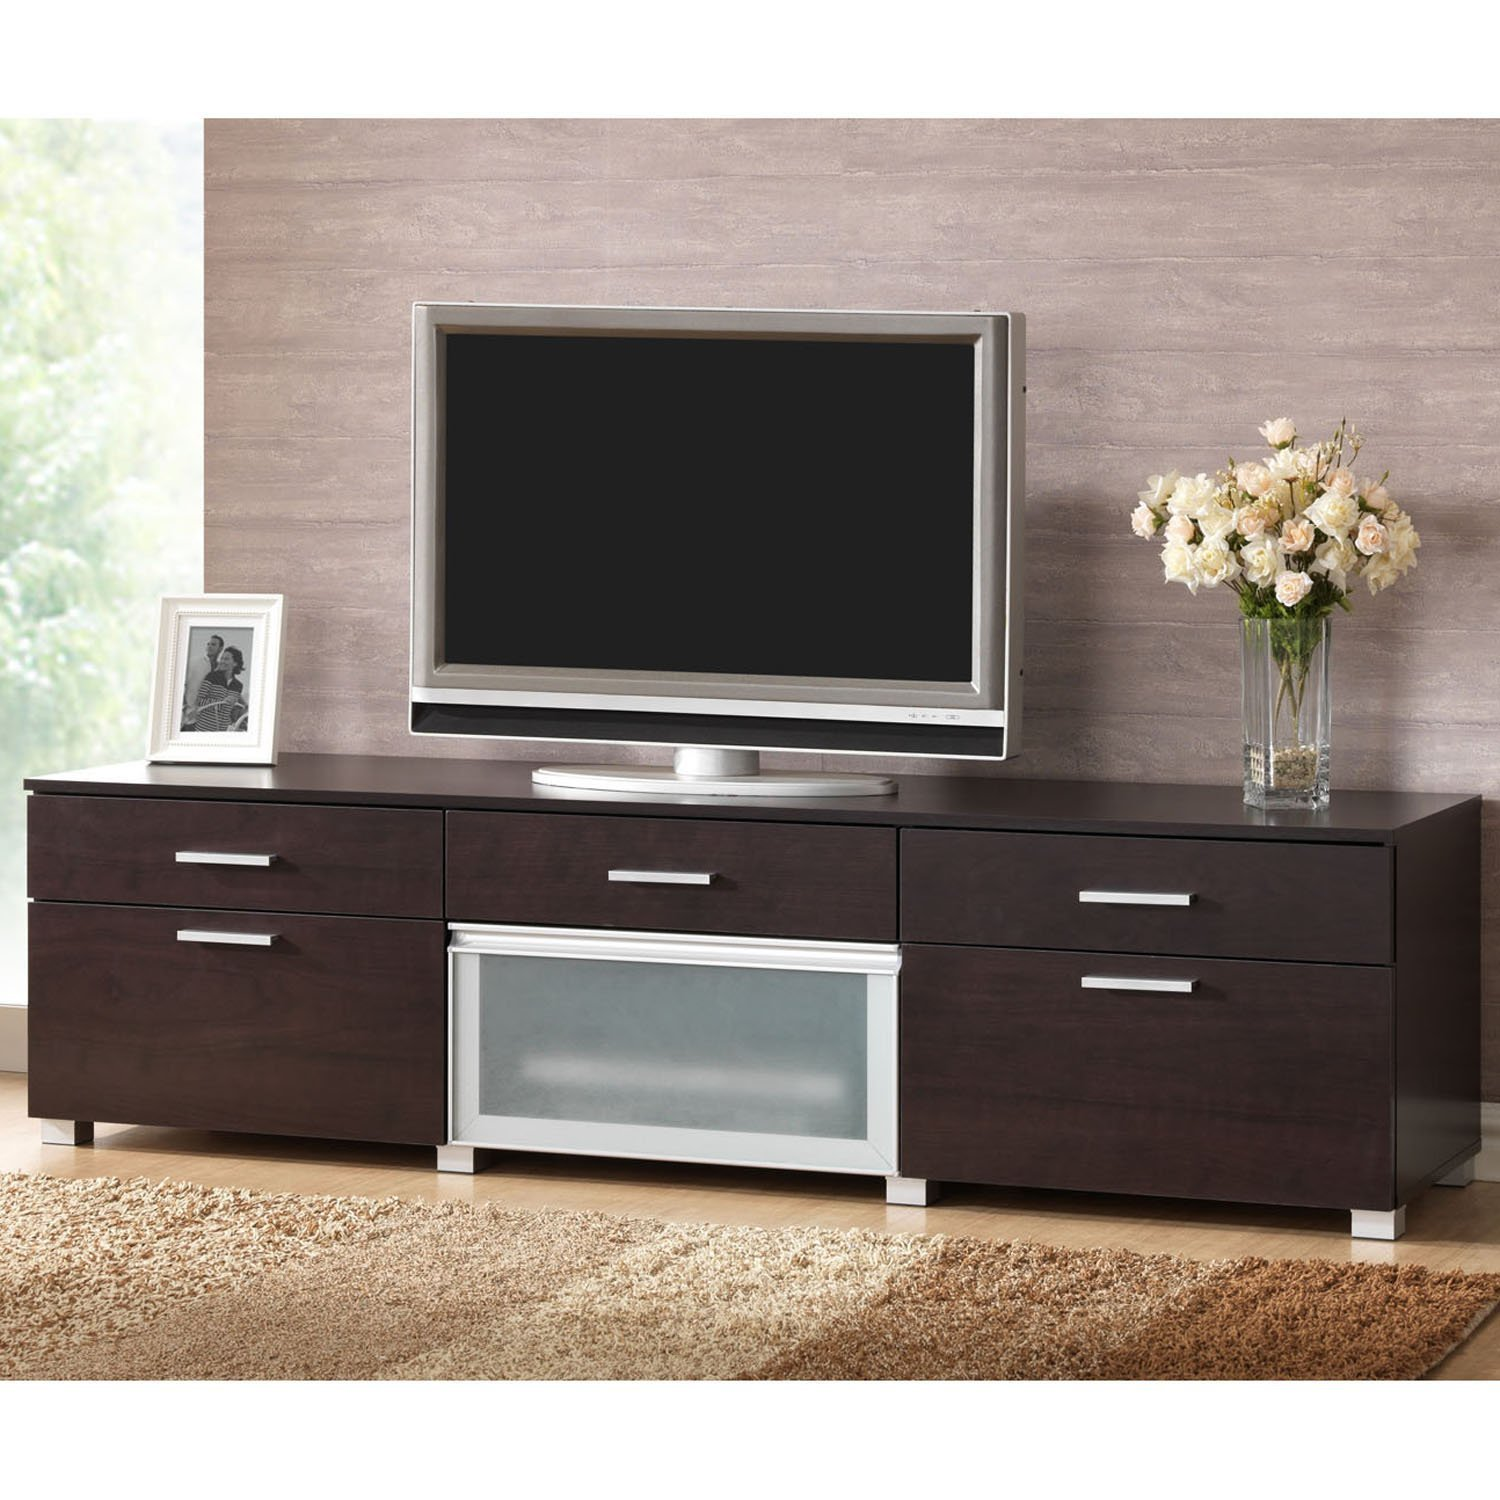 Best New Bedroom Tall Tv Stand For Bedroom With Home Design With Pictures